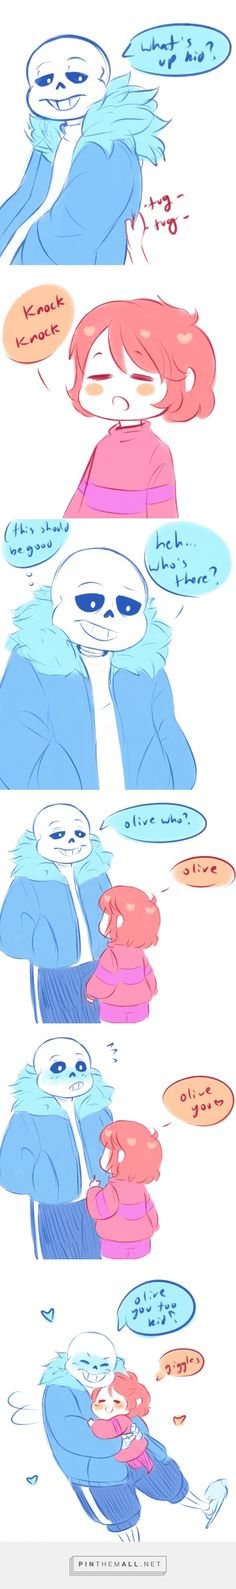 sans and Frisk - comic So Cute ( Undertale )